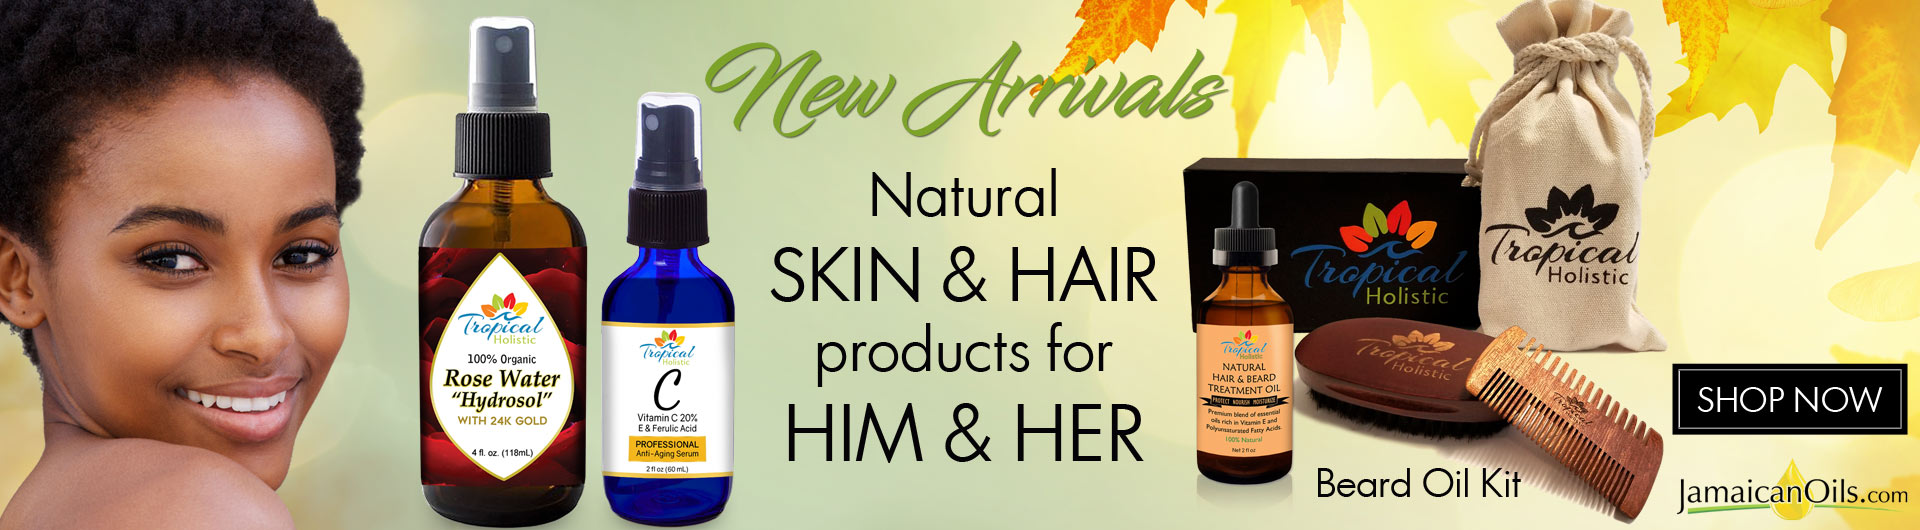 New SKIN & HAIR products from Him and Her